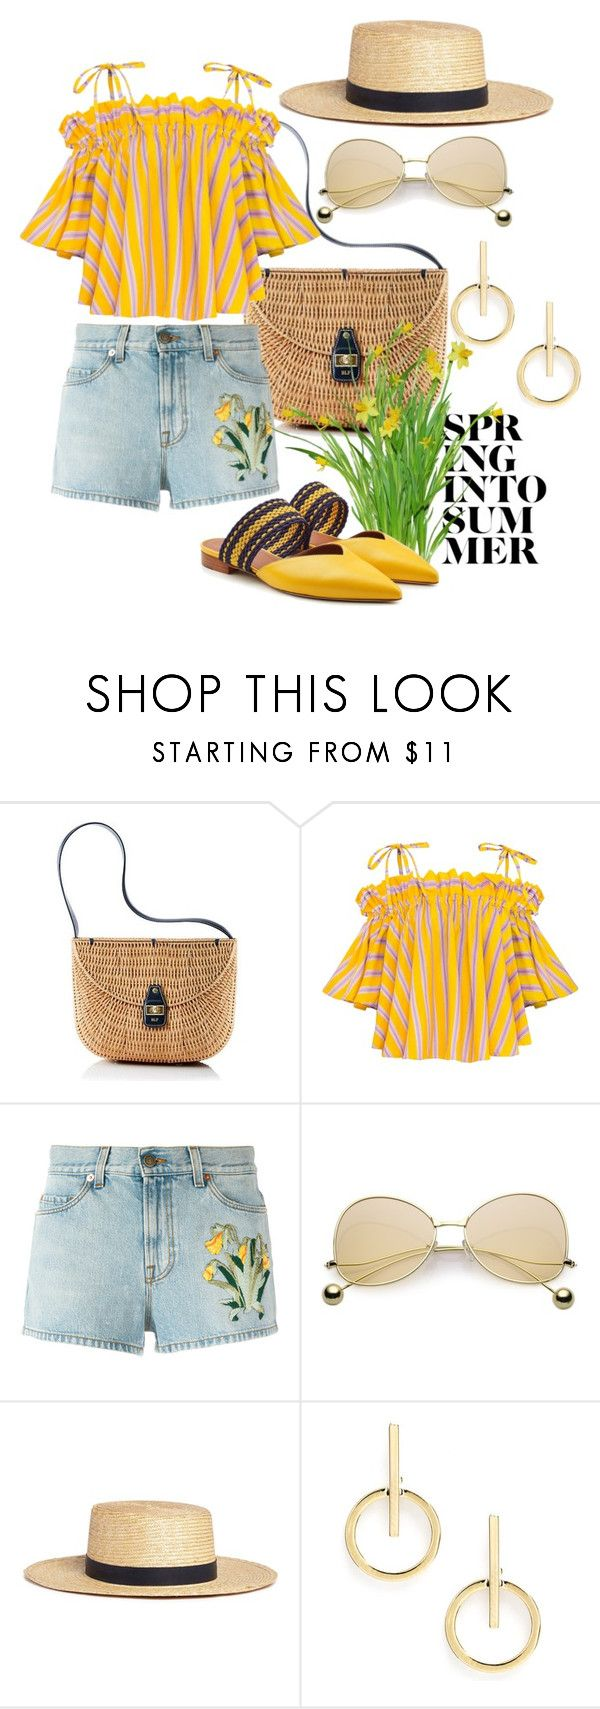 """""""Spring Into Summer!"""" by lheijl ❤ liked on Polyvore featuring Mark & Graham, Gucci, Janessa Leone, Sole Society and Malone Souliers"""